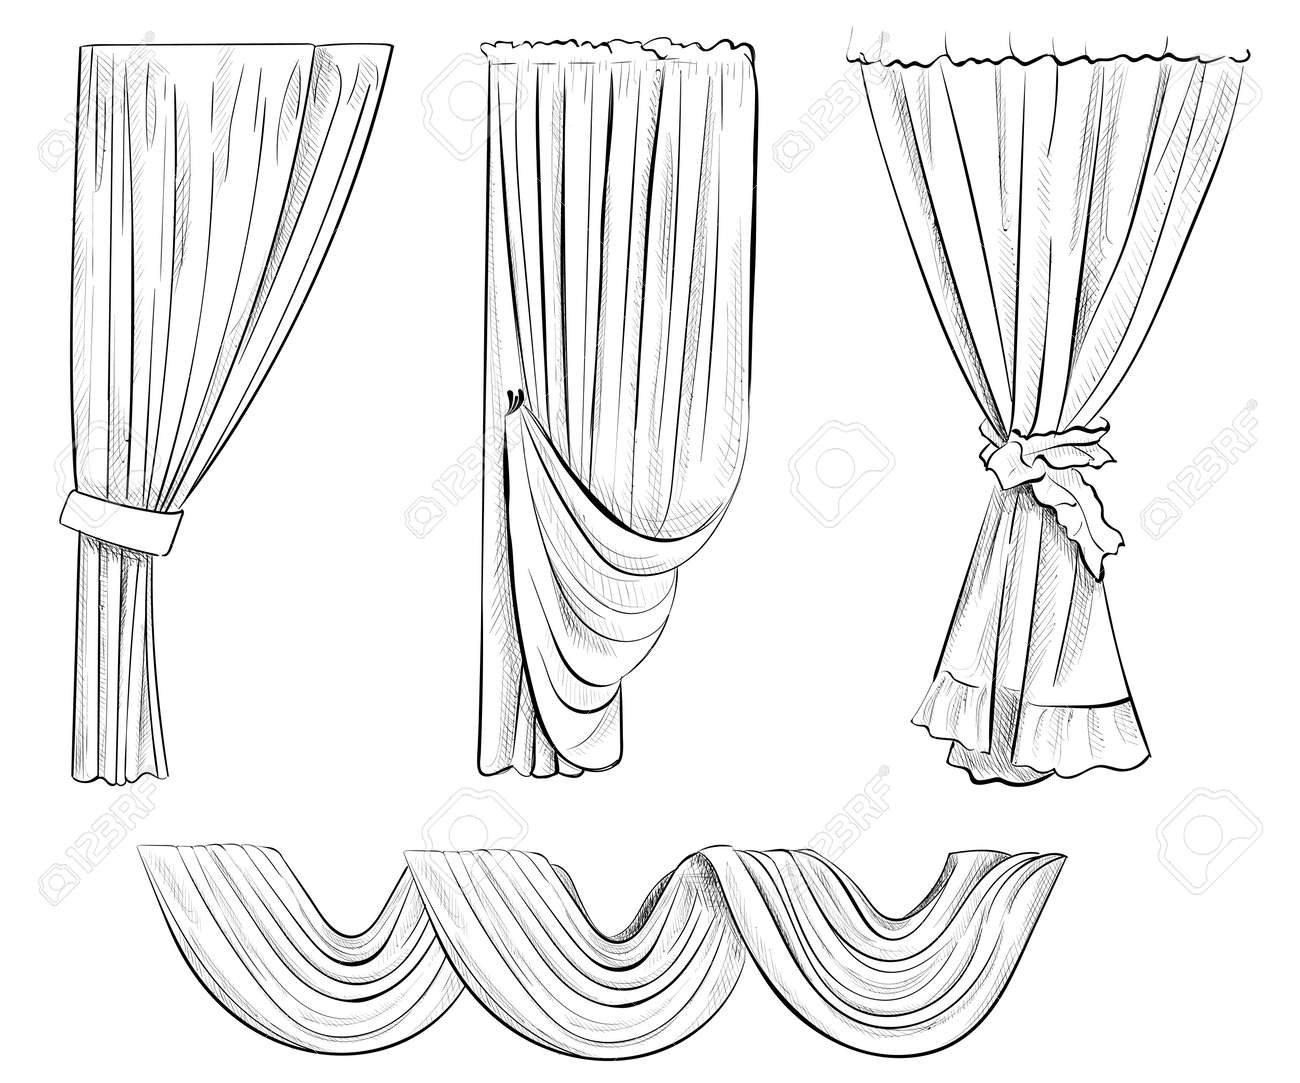 Sketch Design Curtains Windows Background For Use In Design Royalty Free Cliparts Vectors And Stock Illustration Image 58129848